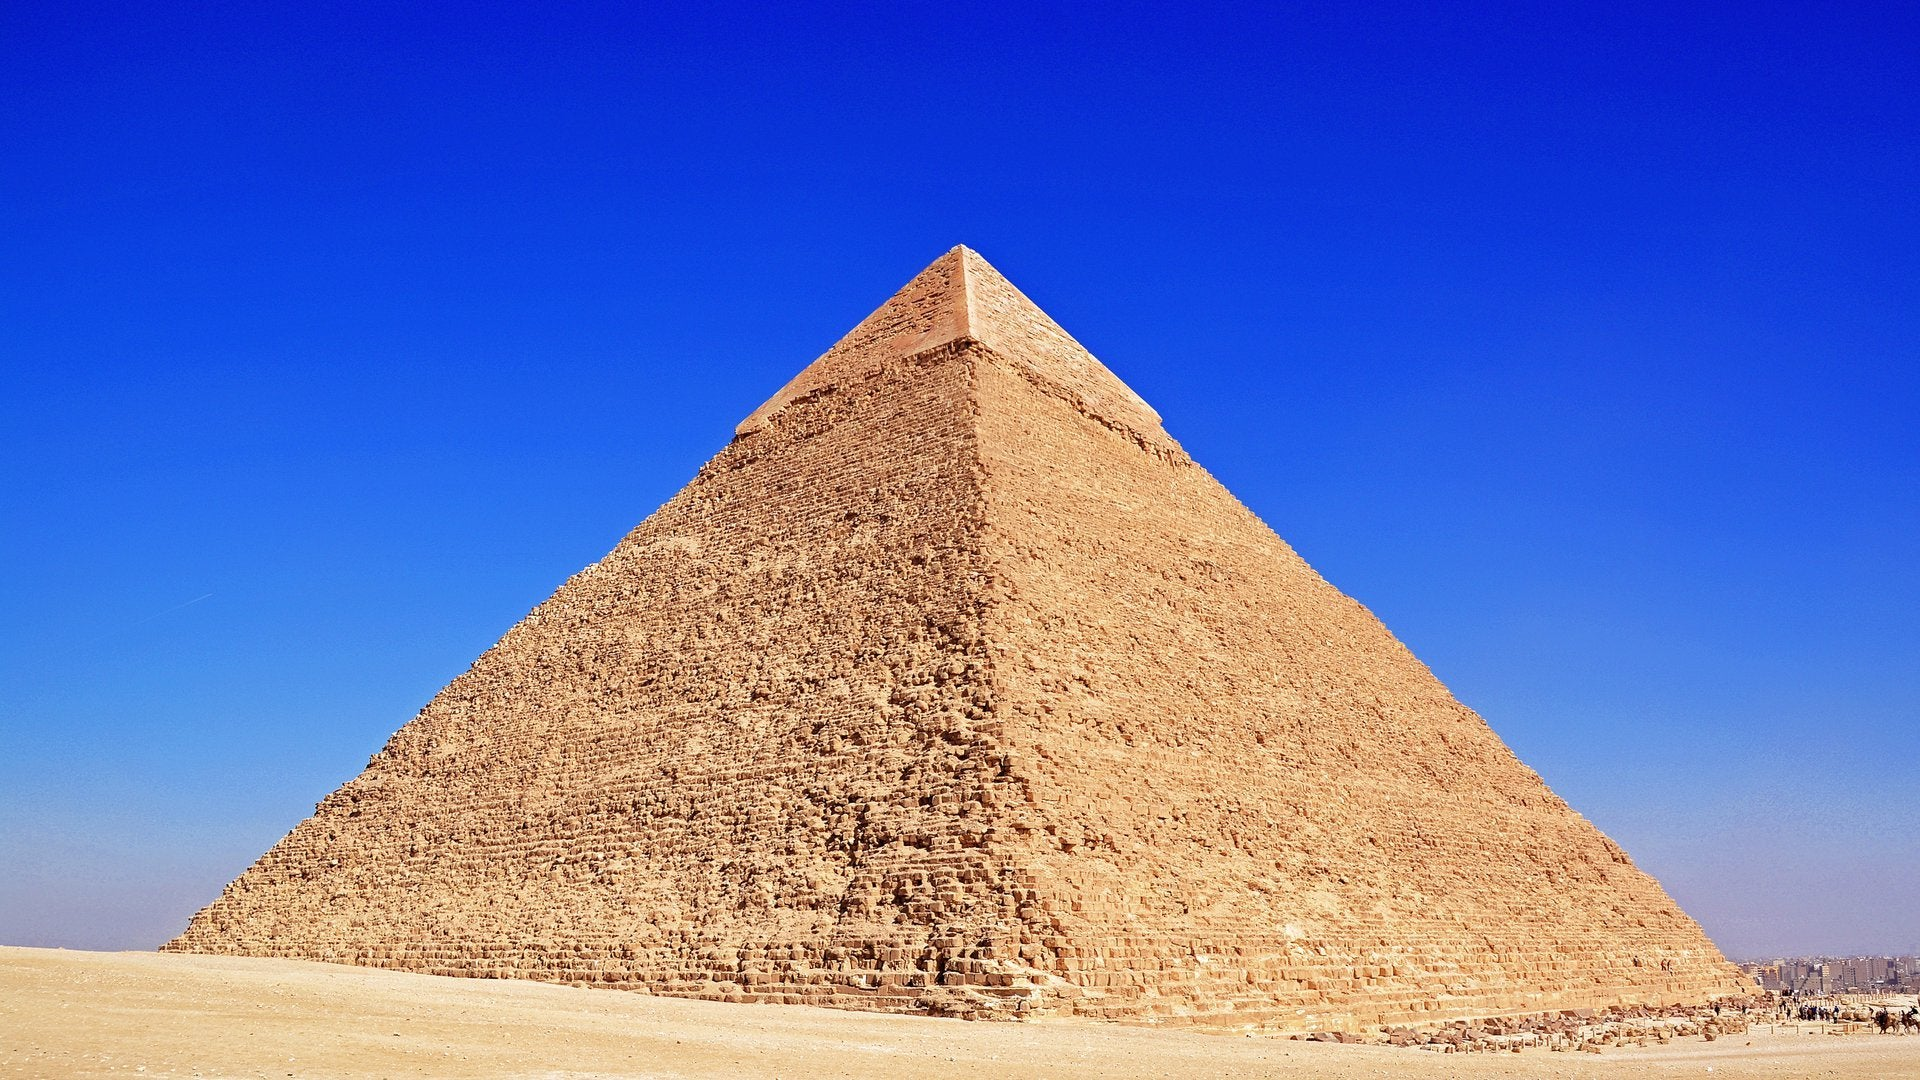 Unearthed: Egypt's Greatest Mysteries